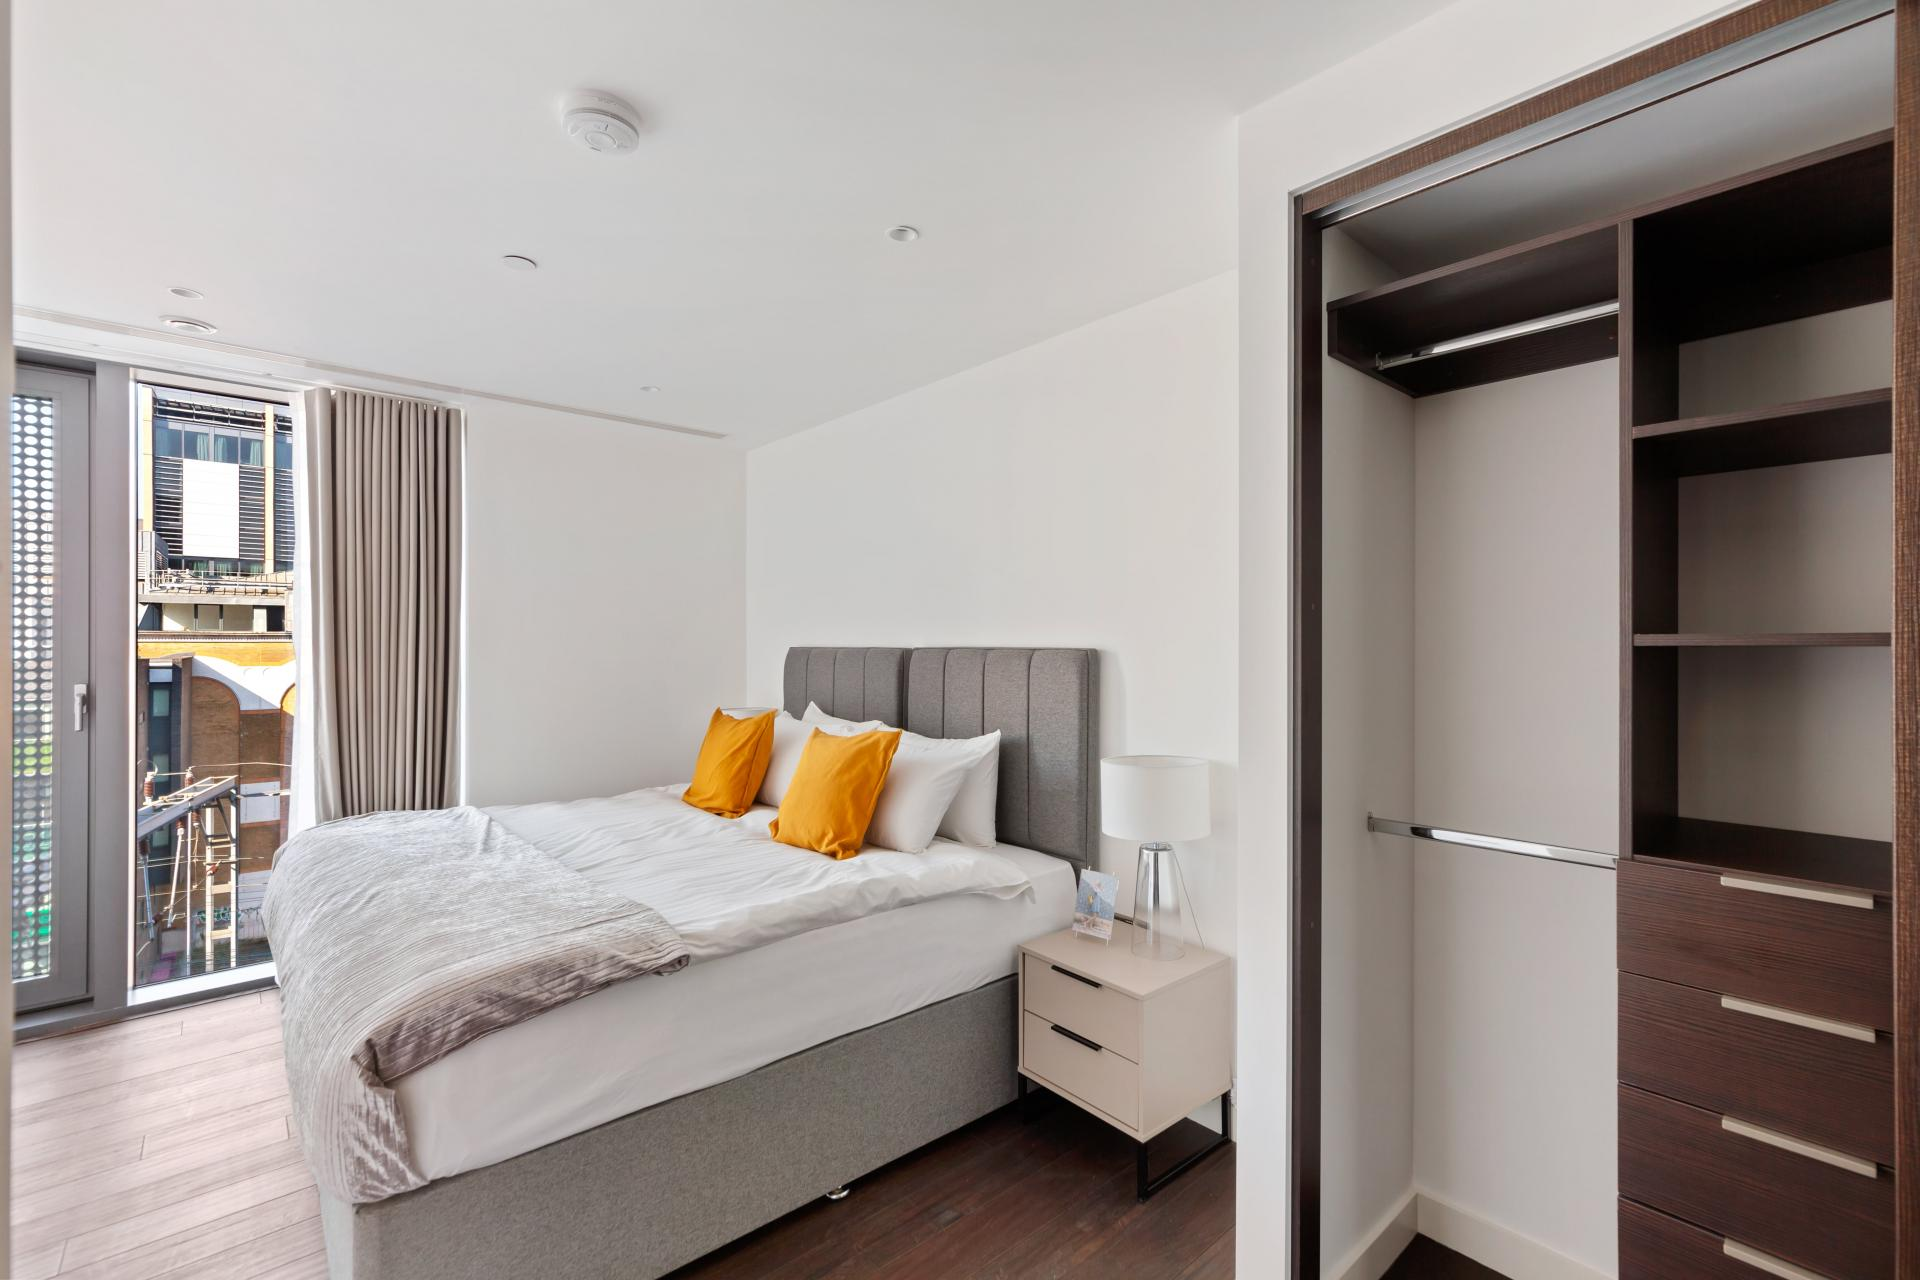 Wardrobe at The Residence Tower Hill, Whitechapel, London - Citybase Apartments